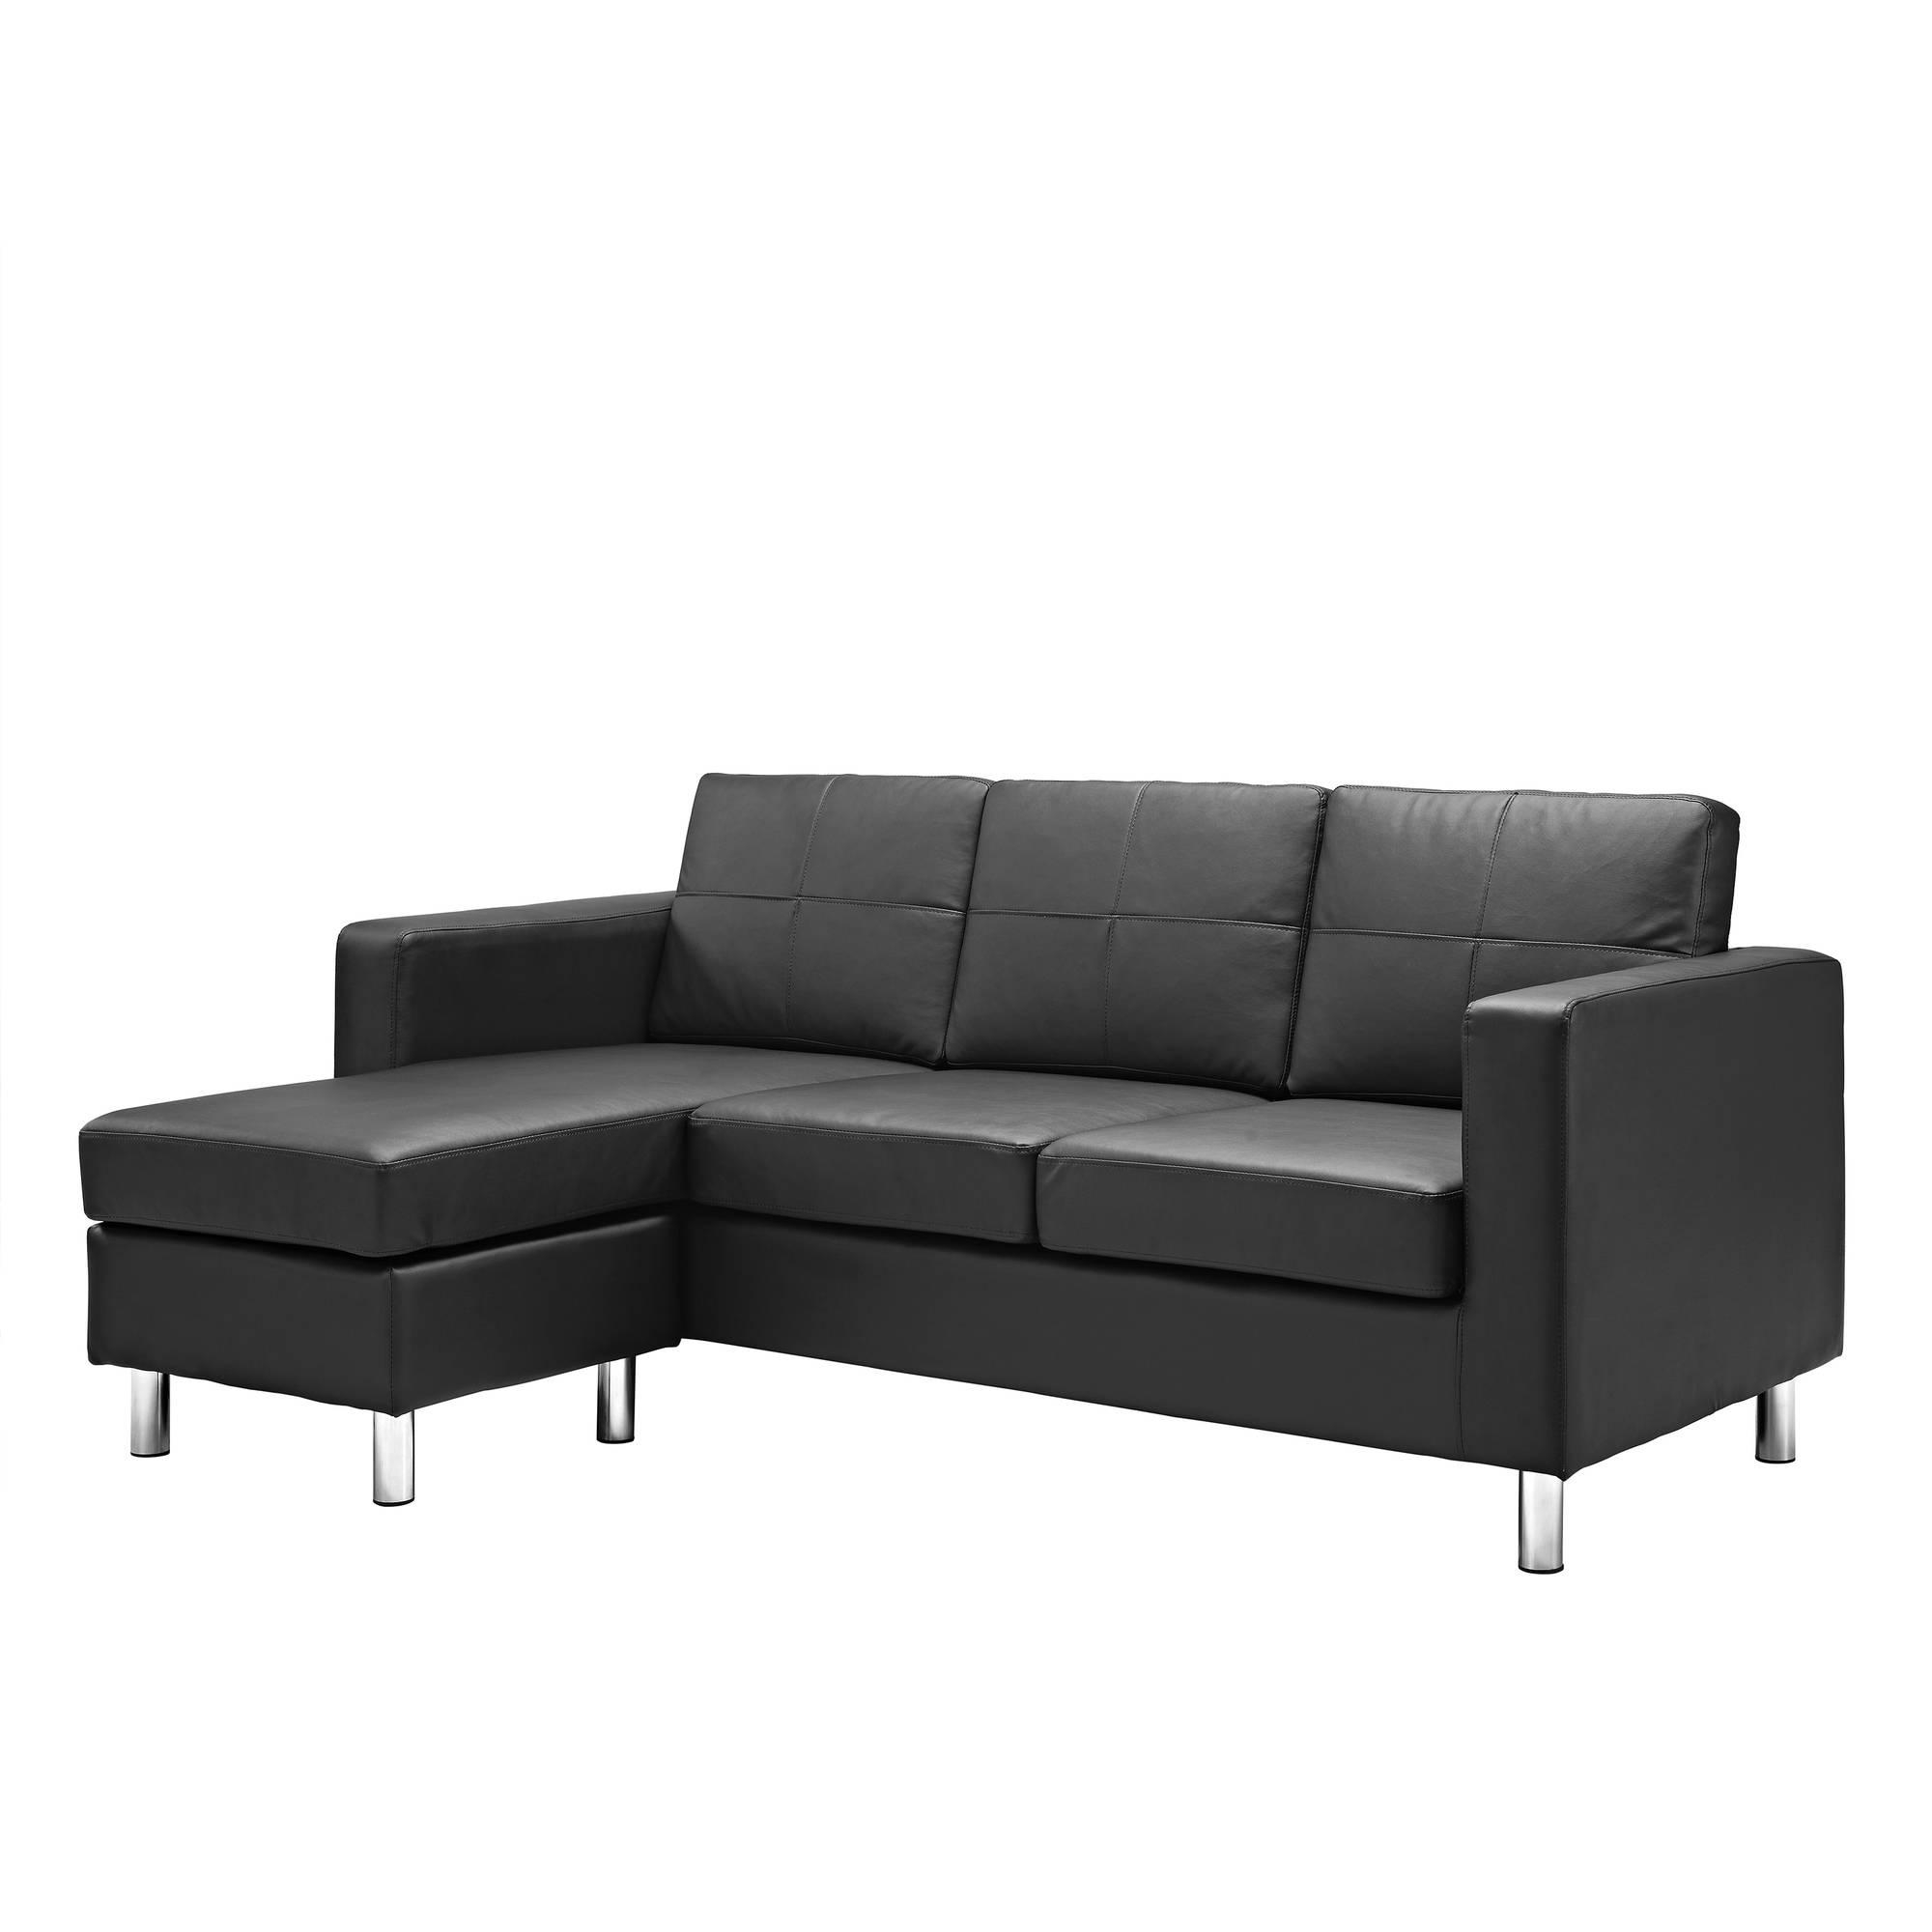 Best Small Space Sectional Sofas 38 For Your Child Sofa Sleeper With Sectional Small Space (Image 3 of 20)